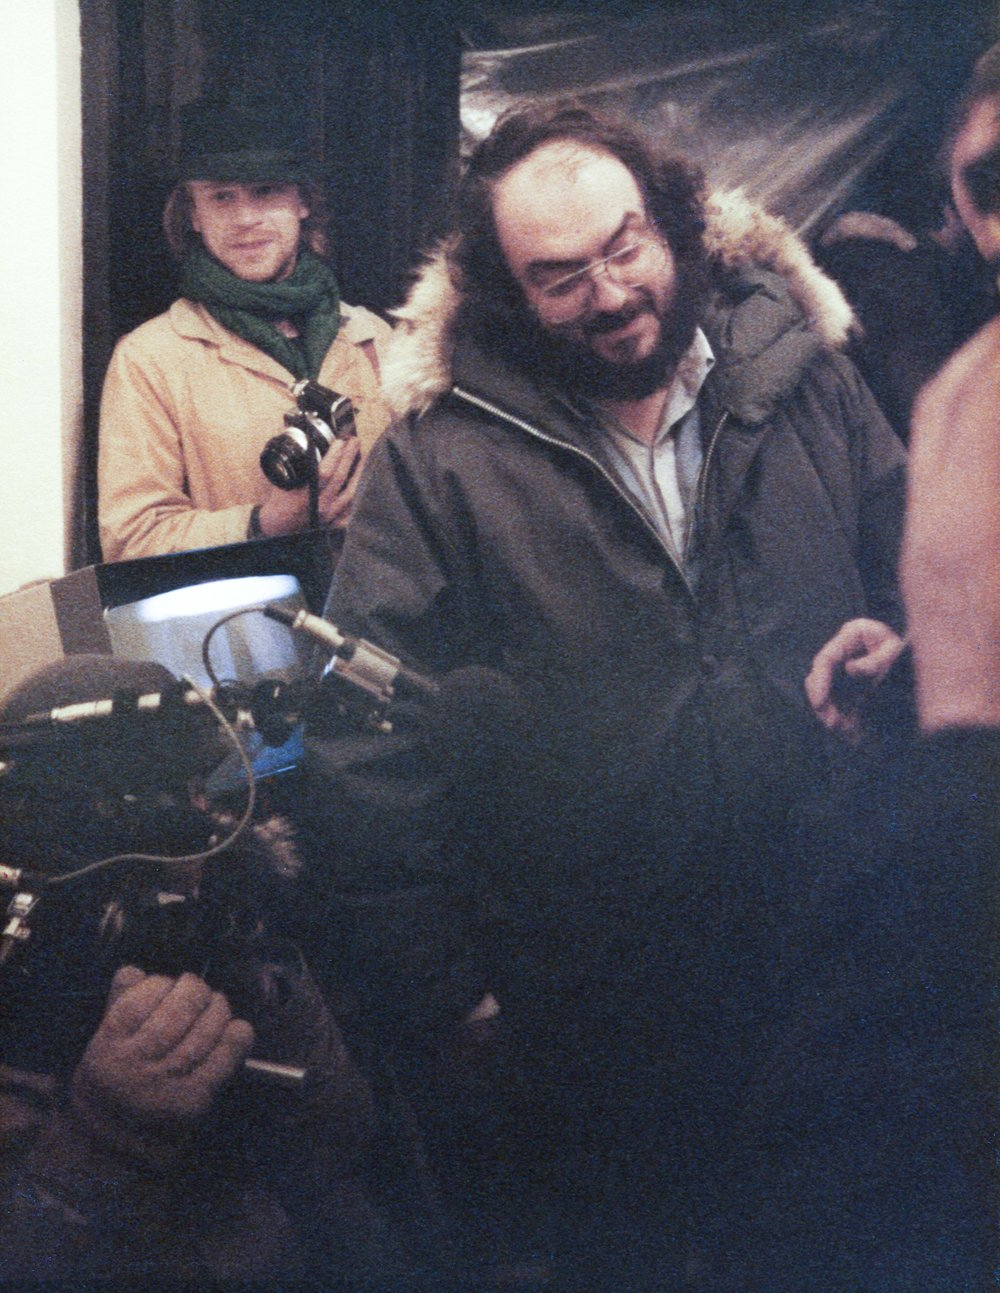 Stanley Kubrick and Leon Vitali in 'The Shining'